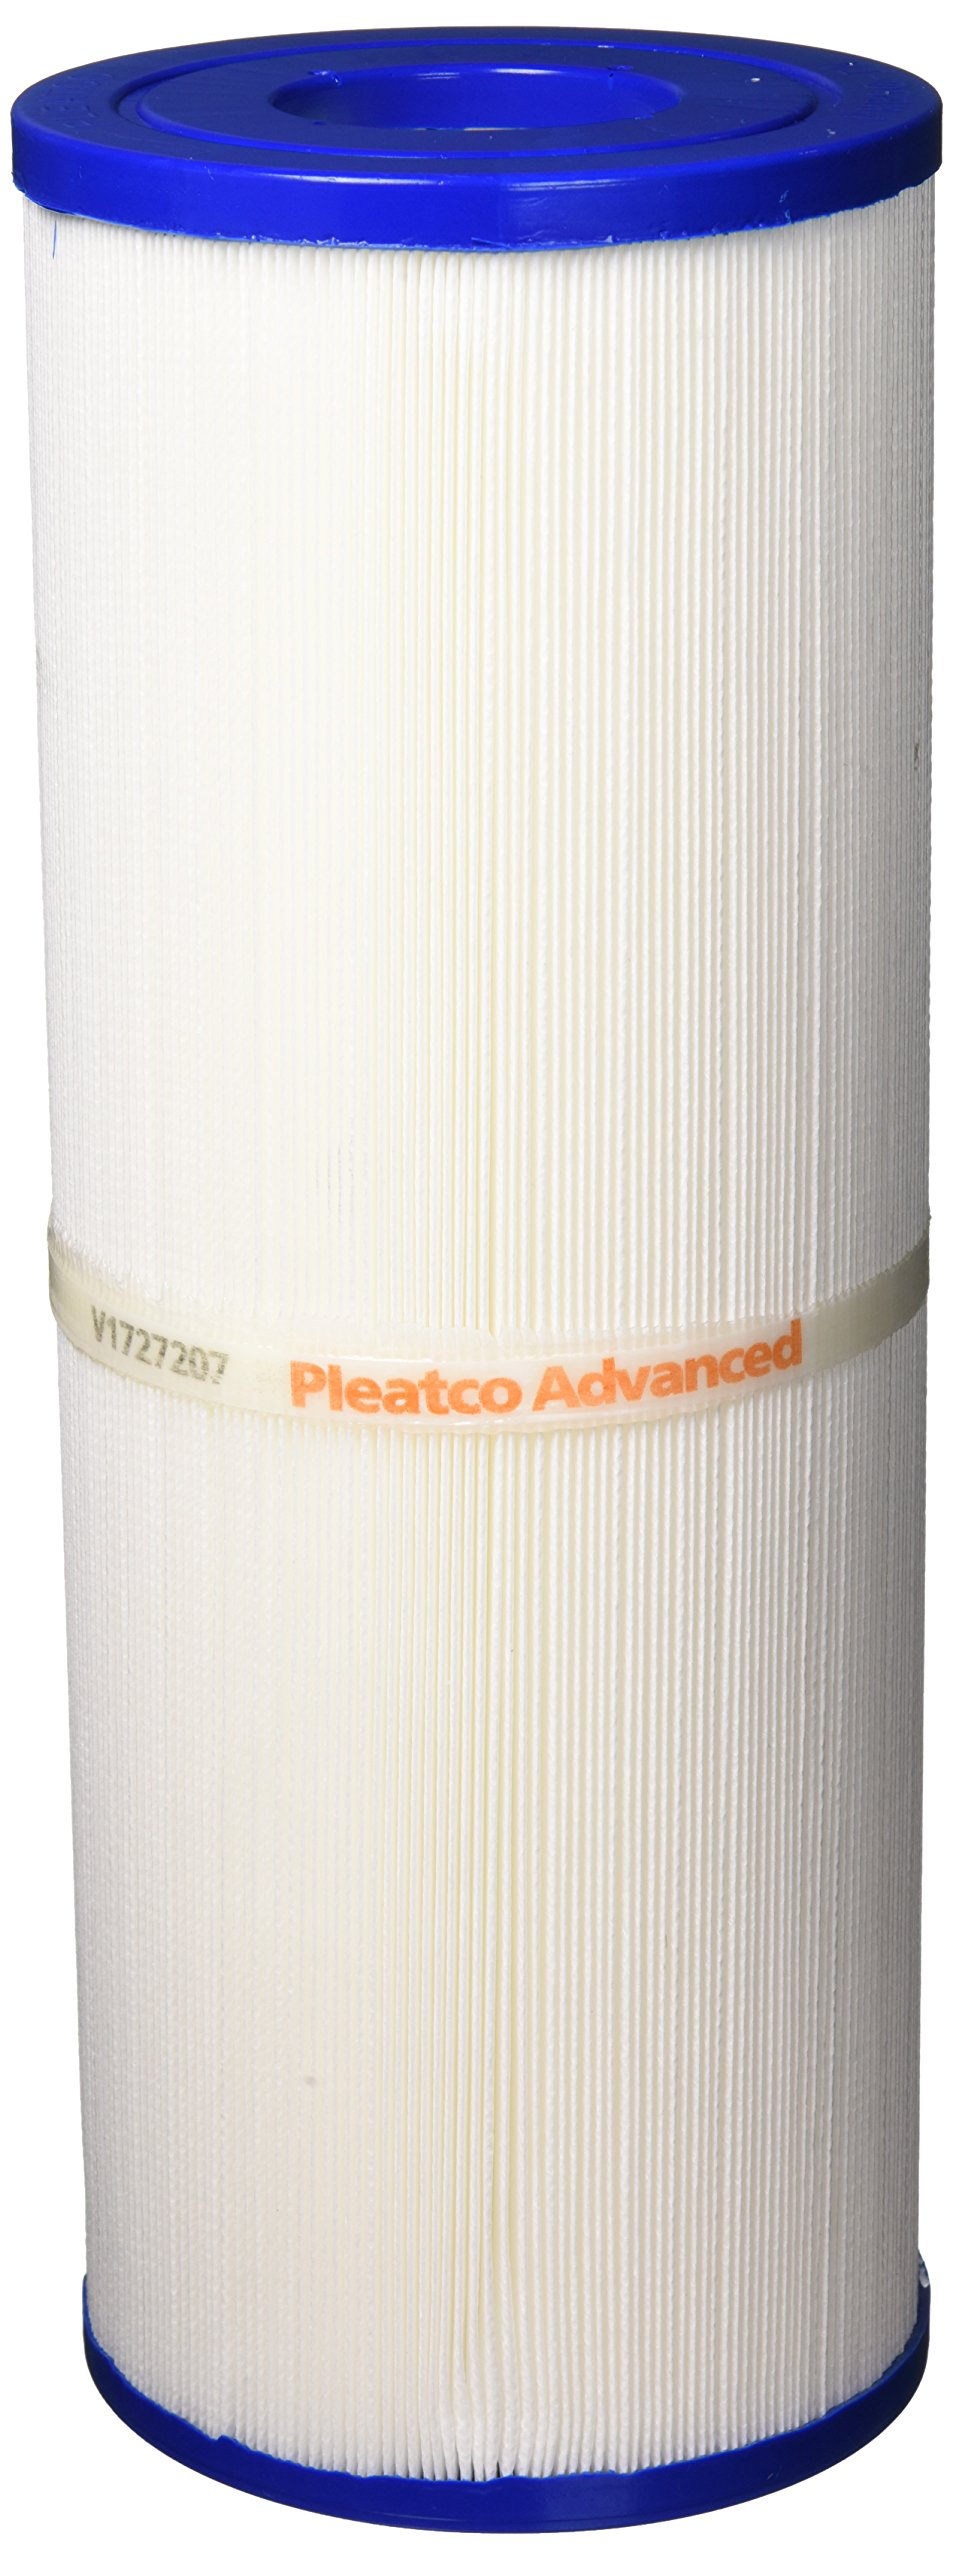 Pleatco PRB50-IN Spa Pool Filter, 1 Cartridge product image